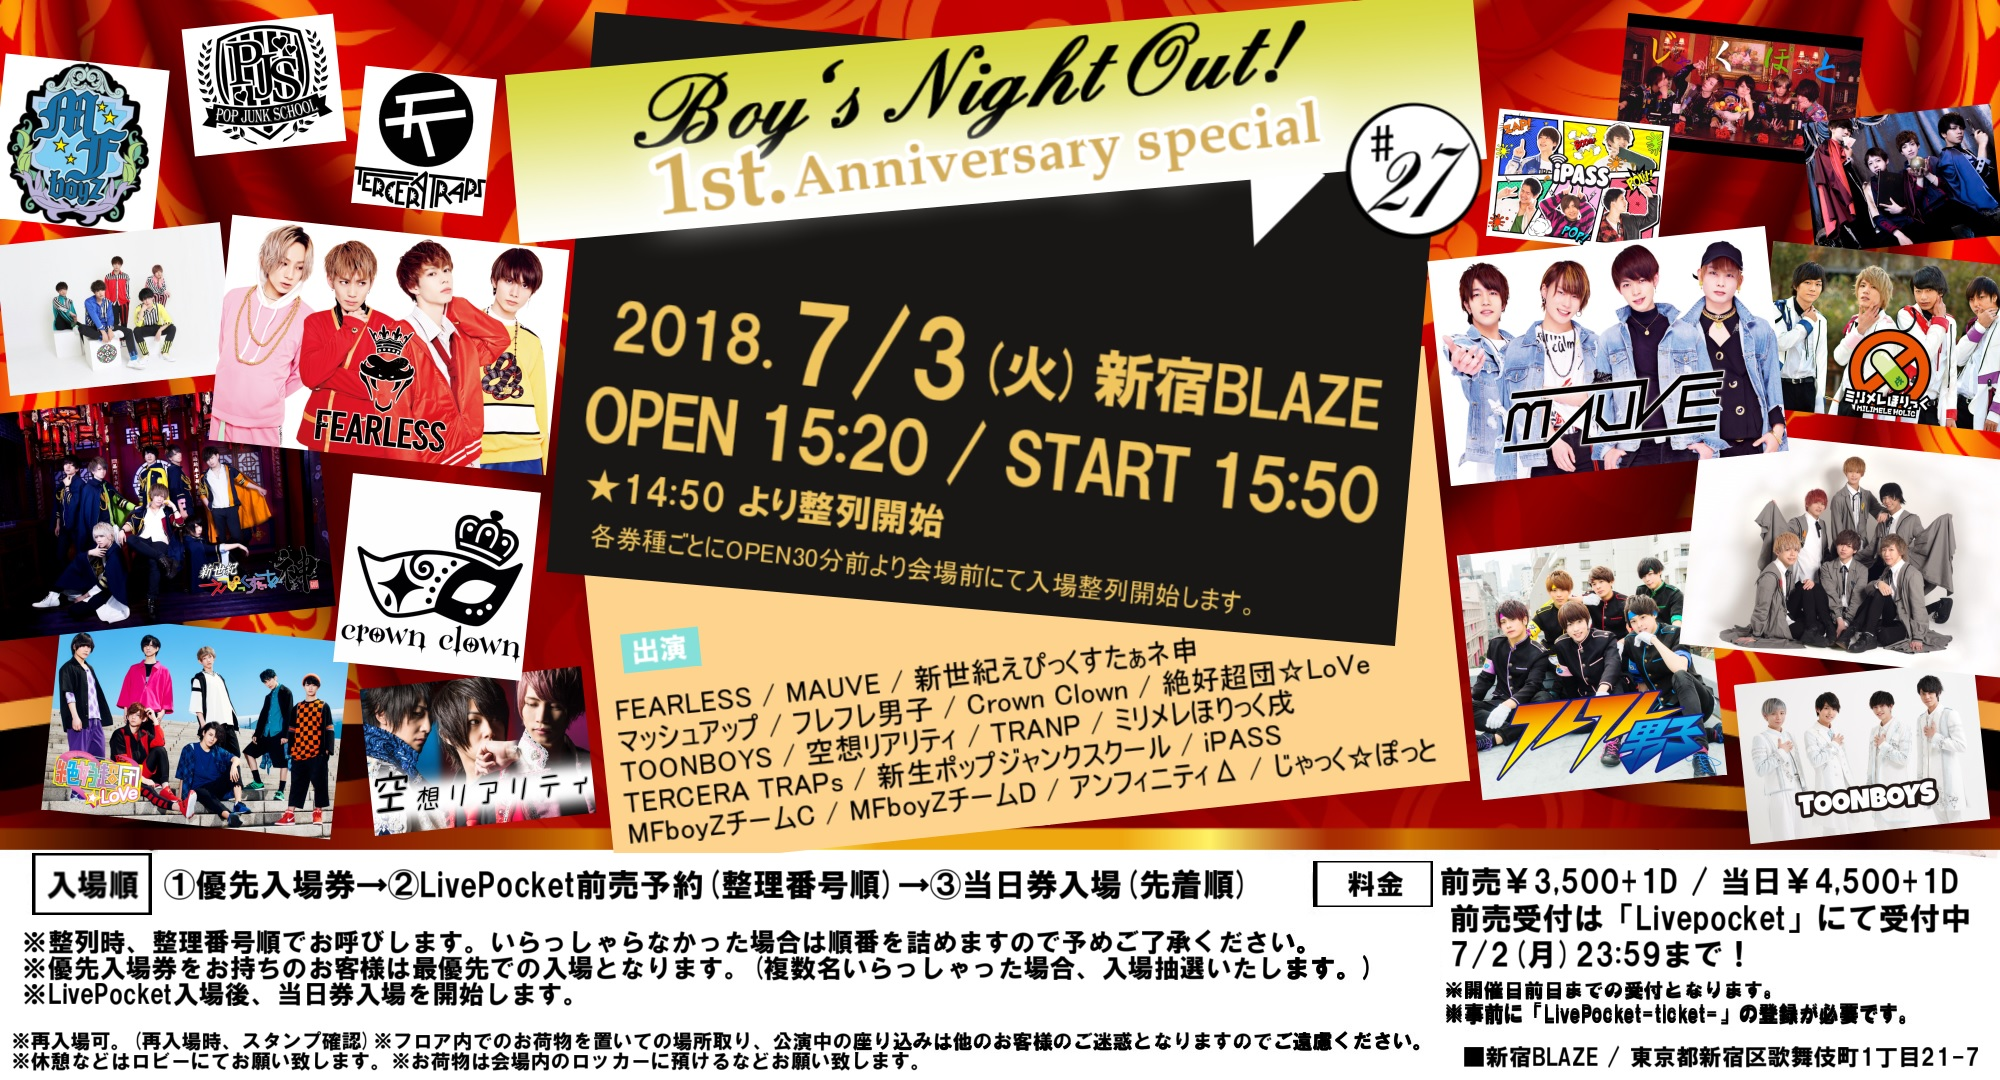 Boy's Night Out!#27~1st. Anniversary special~